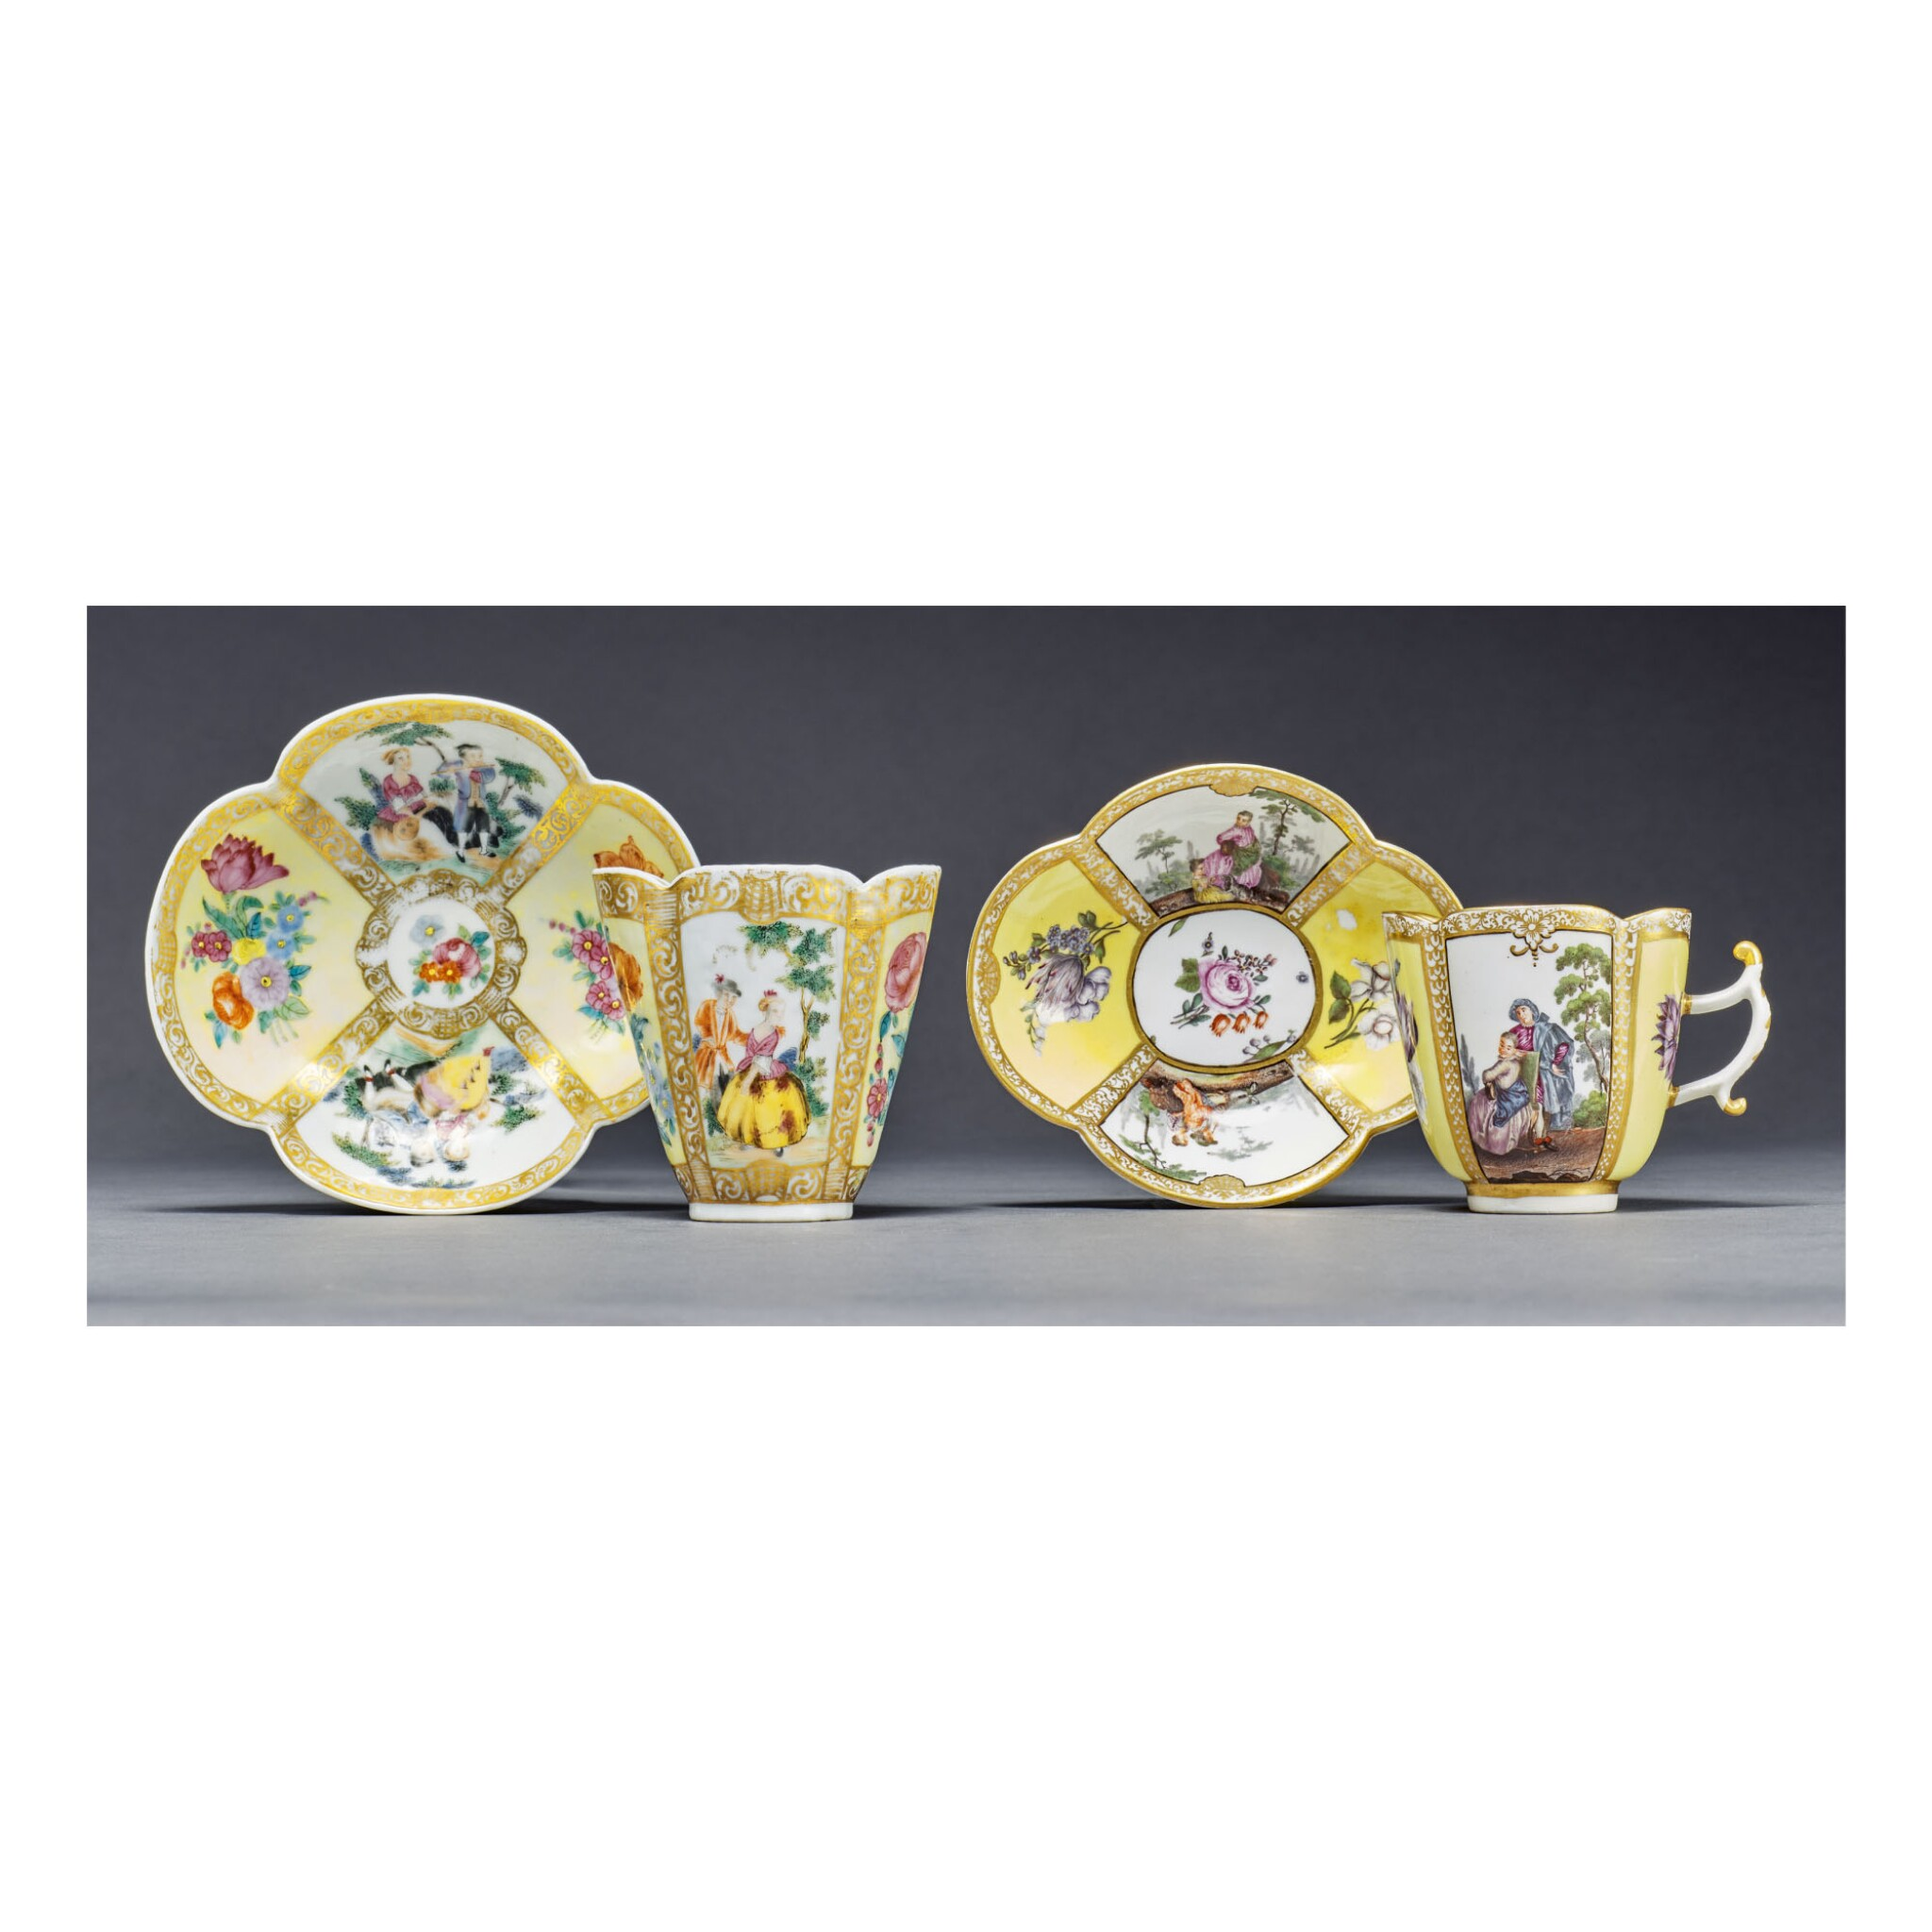 A MEISSEN YELLOW-GROUND QUATREFOIL CUP AND A SAUCER AND A RARE CHINESE EXPORT FAMILLE-ROSE QUATREFOIL BEAKER AND SAUCER CIRCA 1740 AND QING DYNASTY, TONGZHI PERIOD, CIRCA 1865 | 約1740年 邁森開光黃地花卉人物圖海棠式盃連盞 清同治 約1865年 粉彩開光黃地花卉人物圖海棠式盃連盞